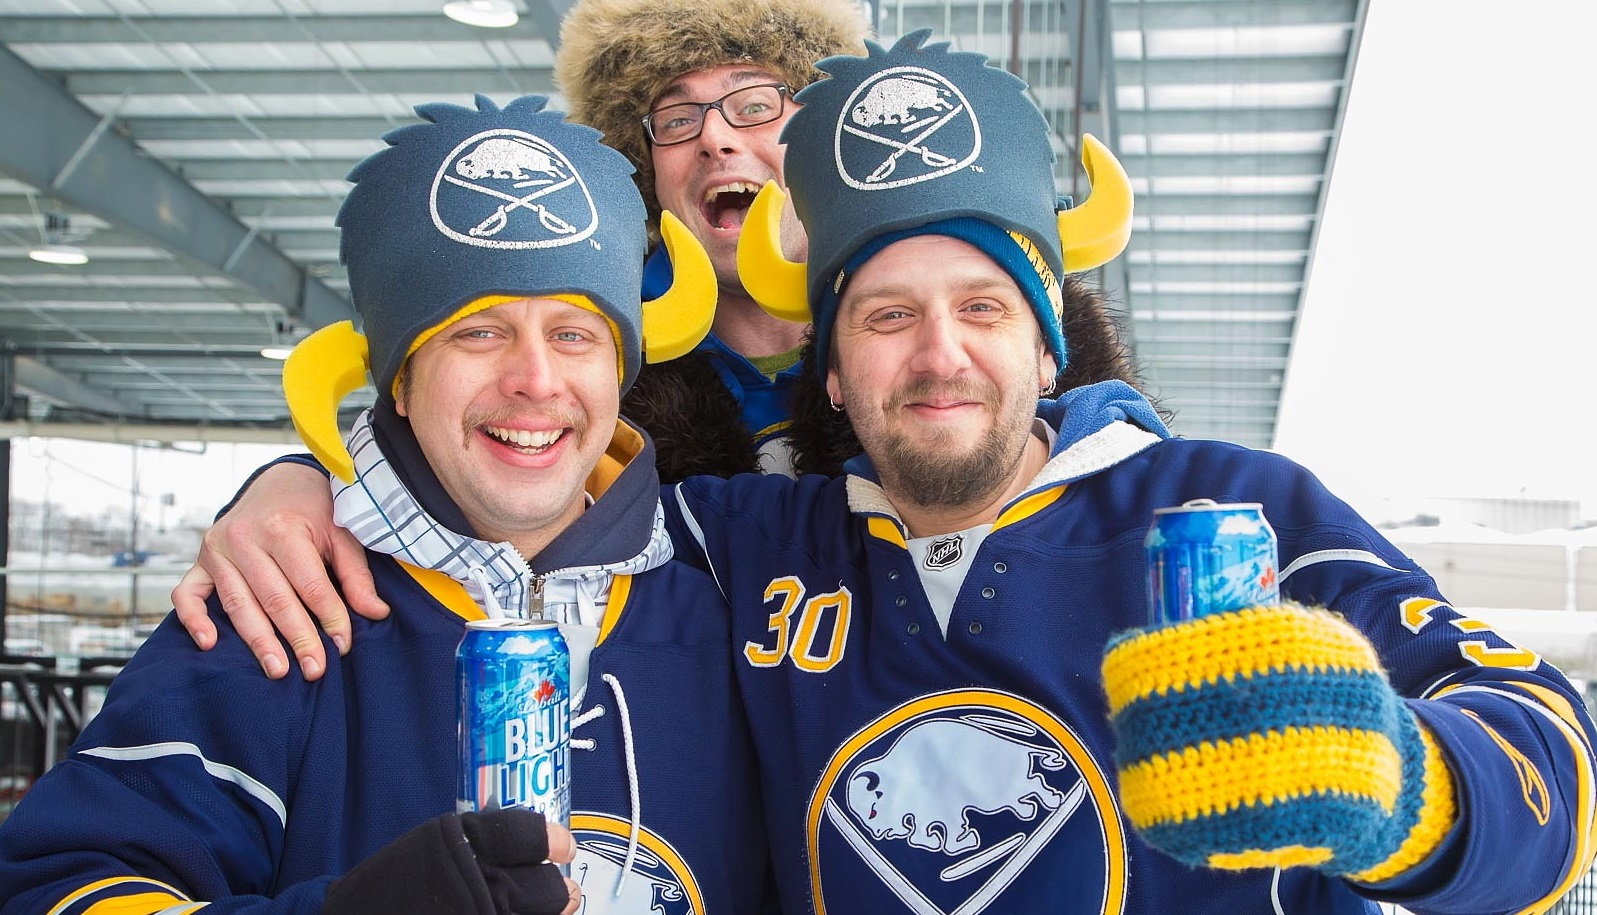 Sabres fans enjoy themselves at the 2015 Labatt Blue Pond Hockey Tournament in Buffalo RiverWorks. (Don Nieman/Special to The News)